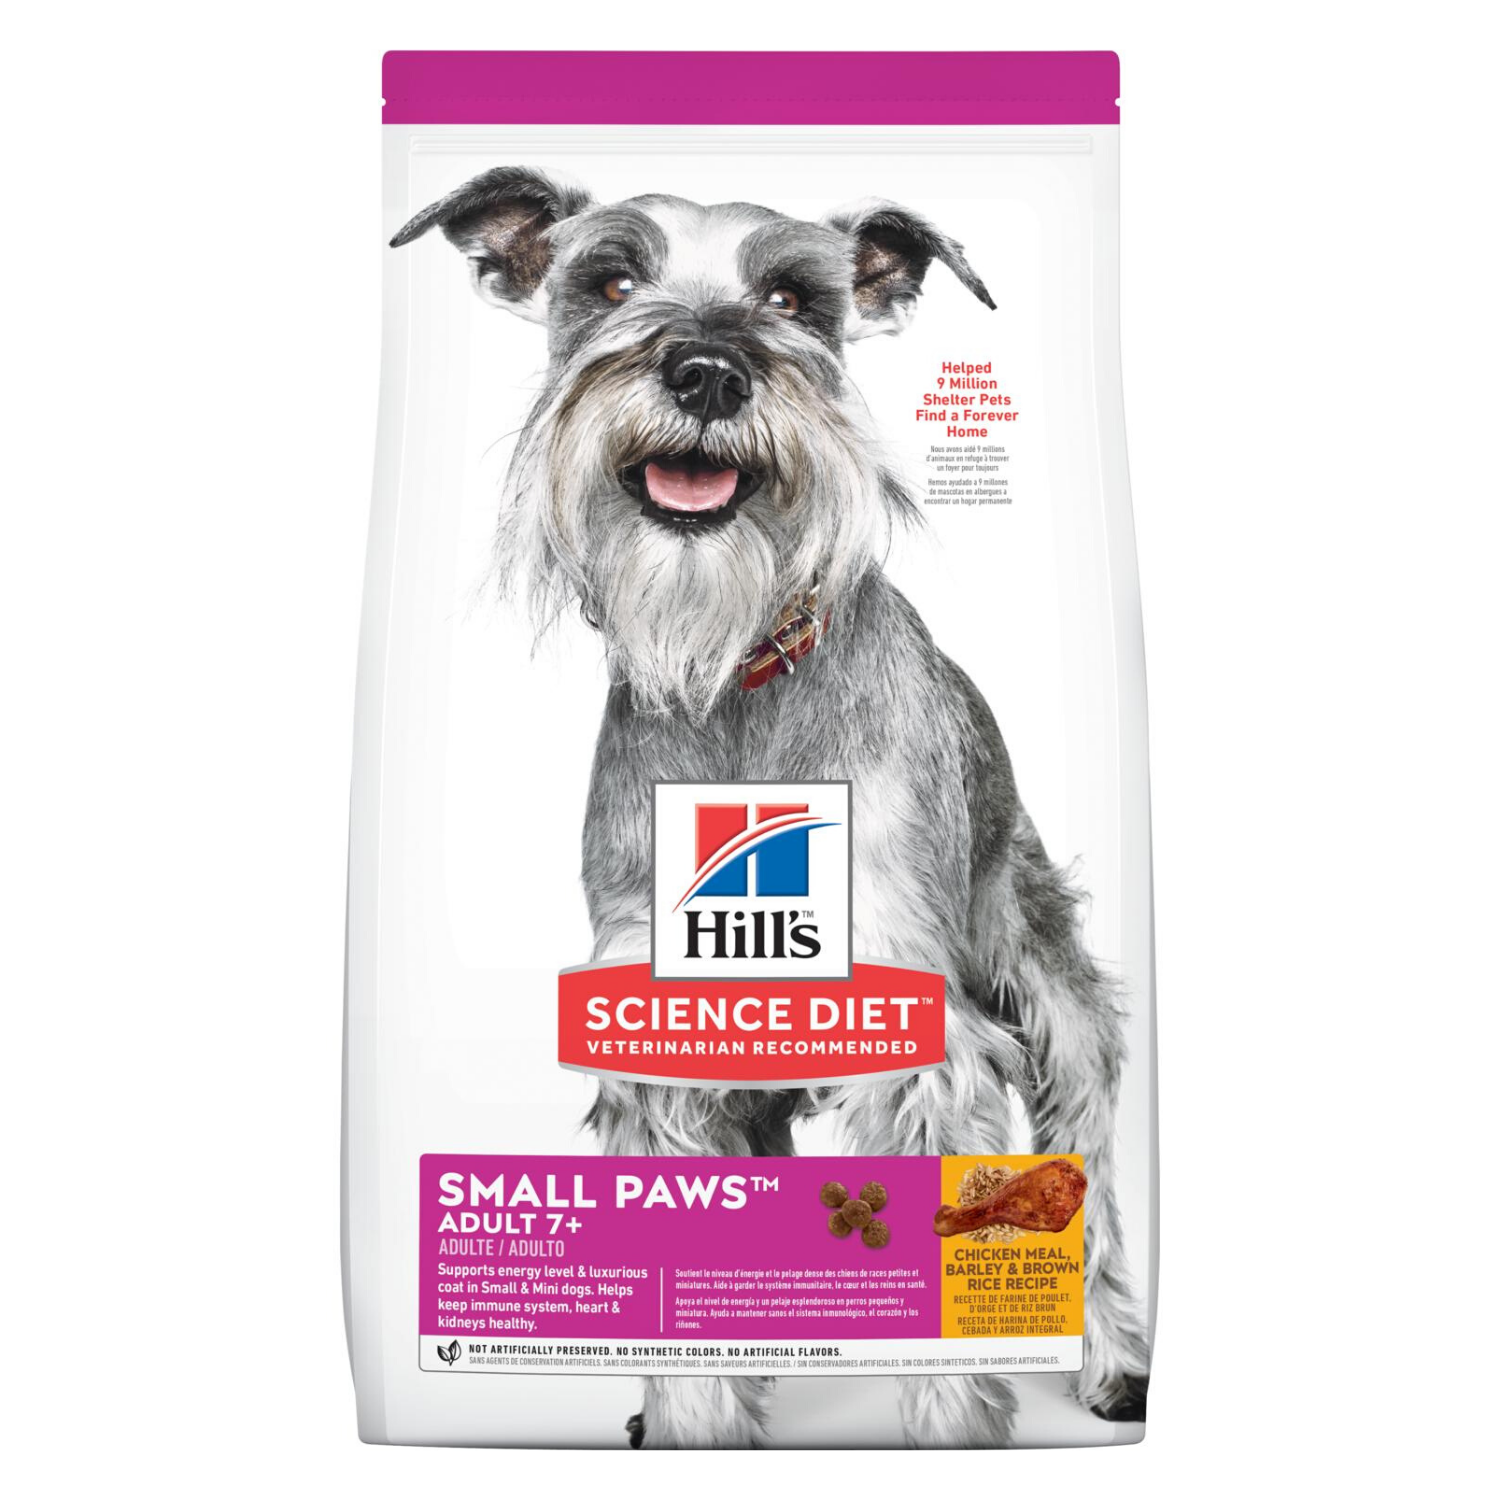 Hill's Science Diet Adult 7+ Small Paws - Chicken Meal, Barley & Brown Rice - 1.5kg / 7kg